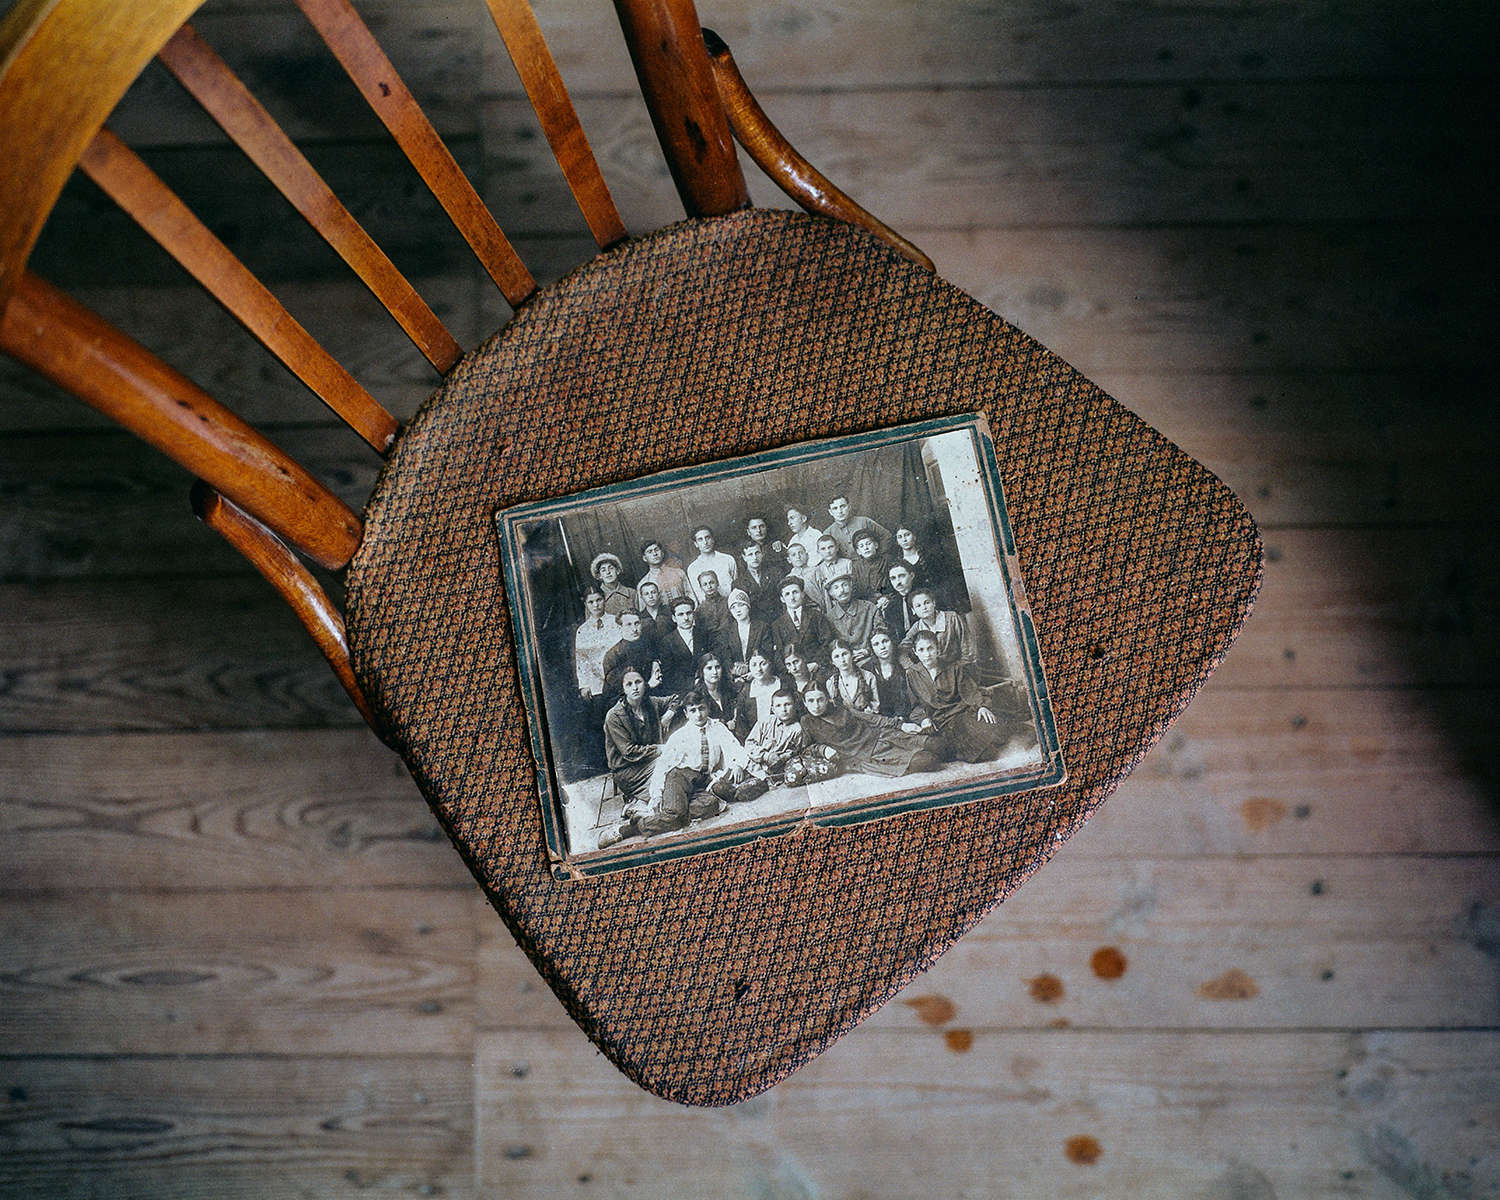 Steffen Junghanß - The Invisible Border old family photo on chair